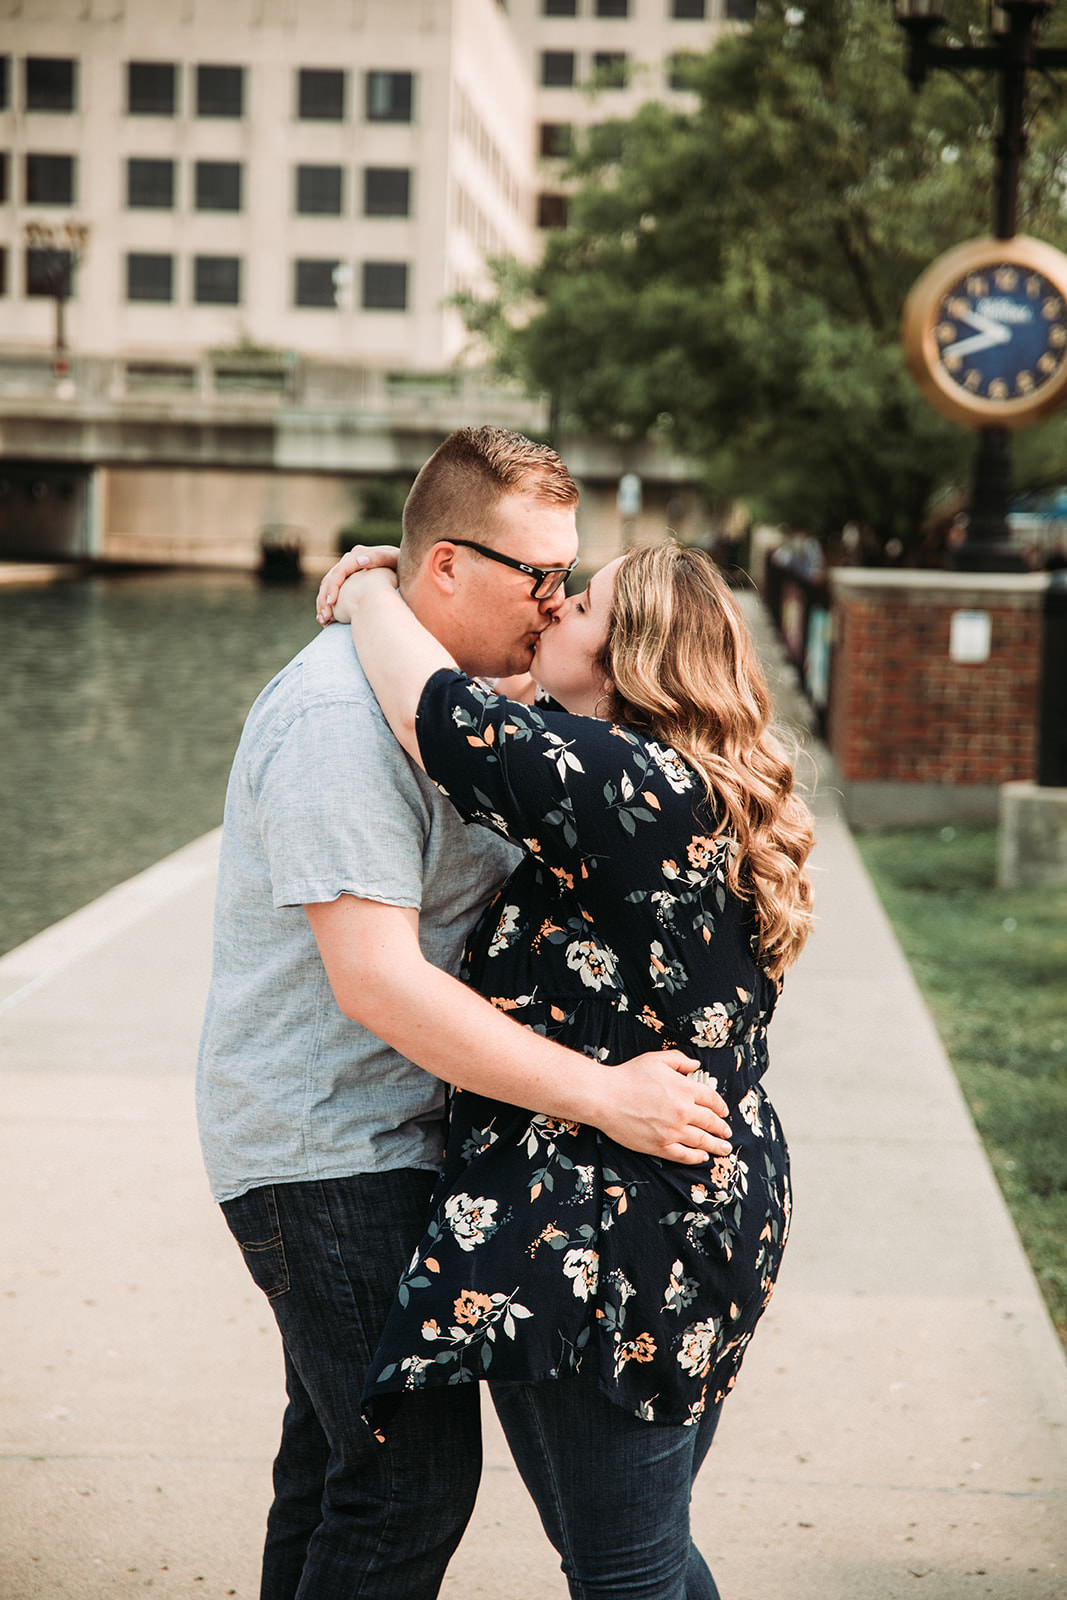 DowntownIndianapolisSpringEngagementPhotos-30.jpg